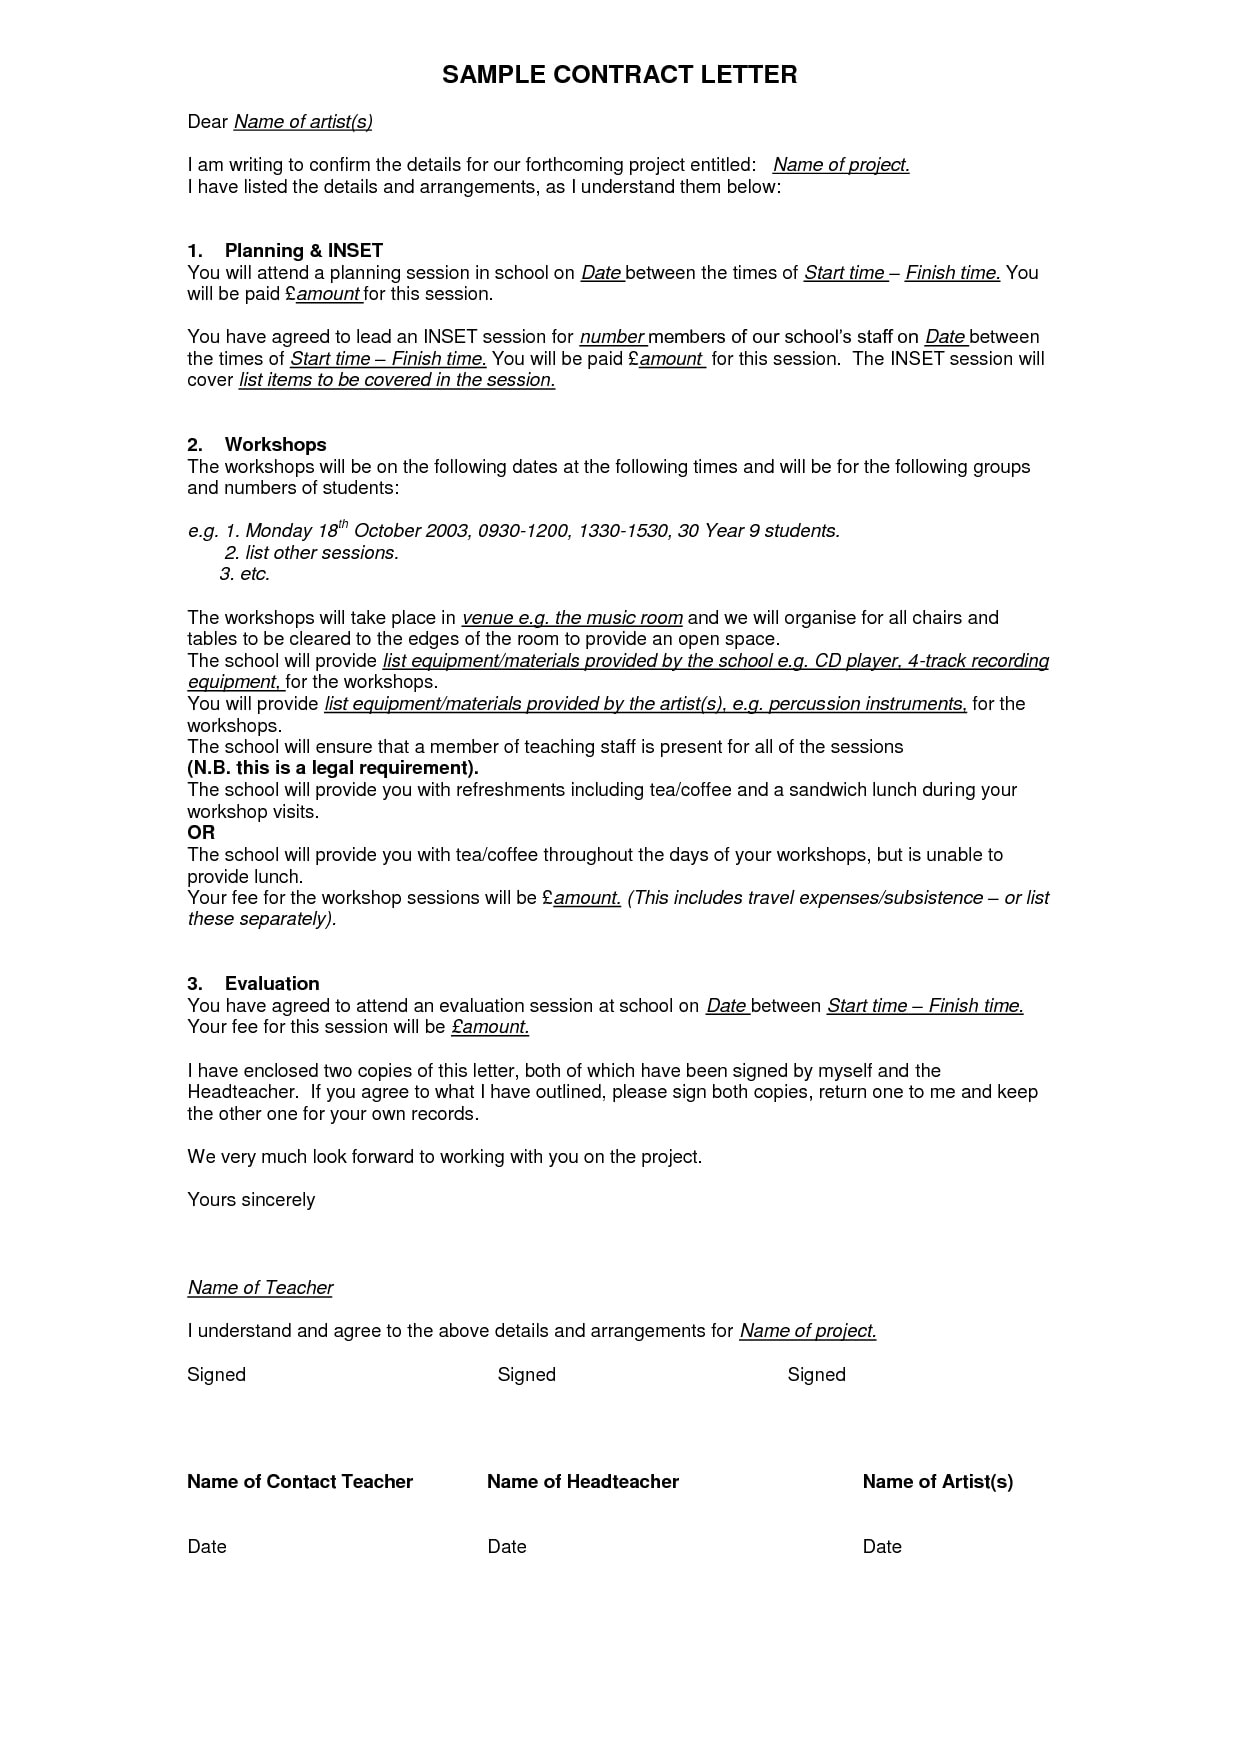 Writing Contract Agreement 9 Contract Agreement Letter Examples Pdf Examples